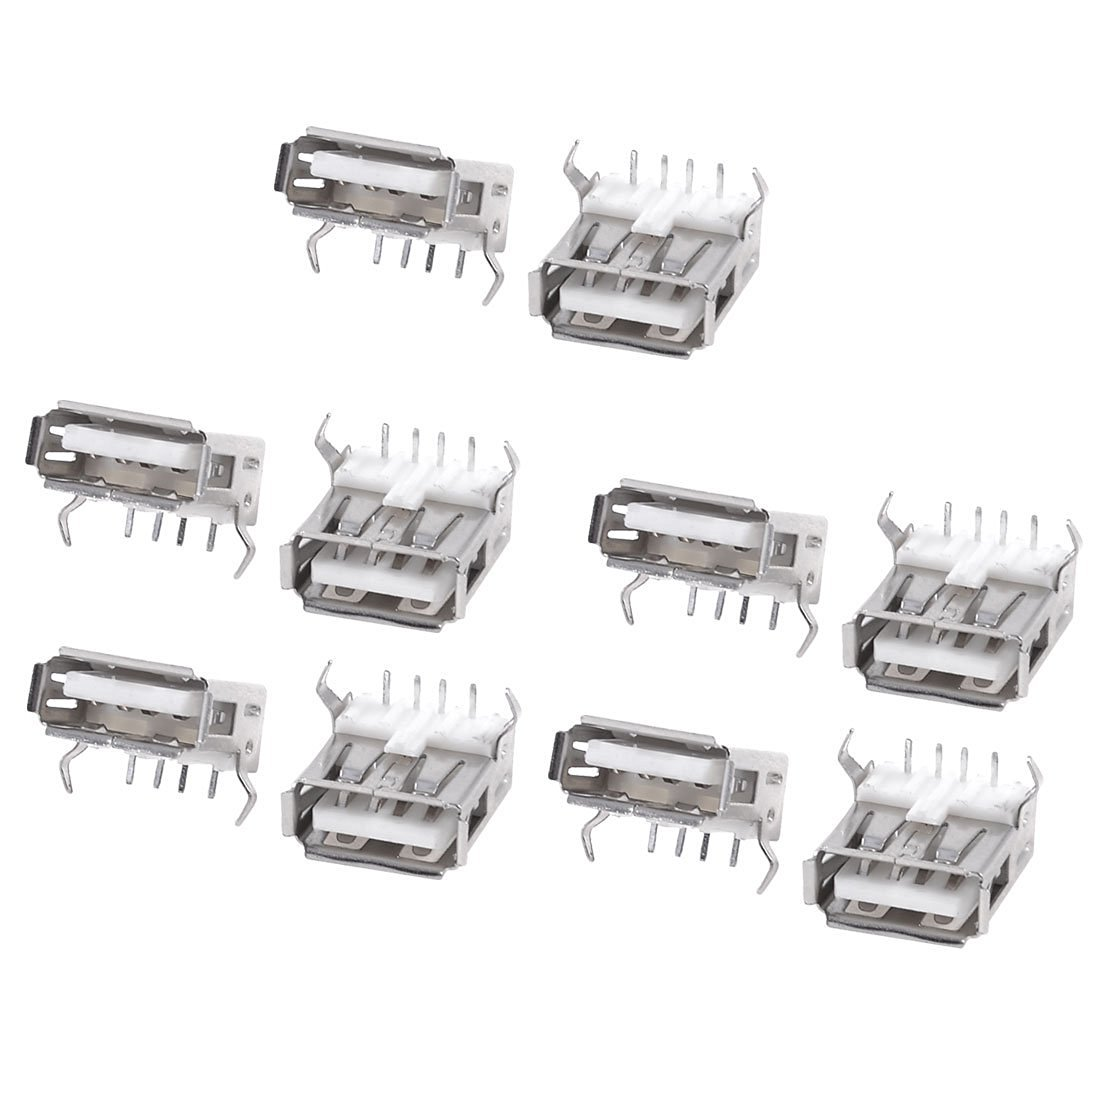 Buy SODIAL(R) 10 Pcs USB Female Type-B Port 4-Pin Right